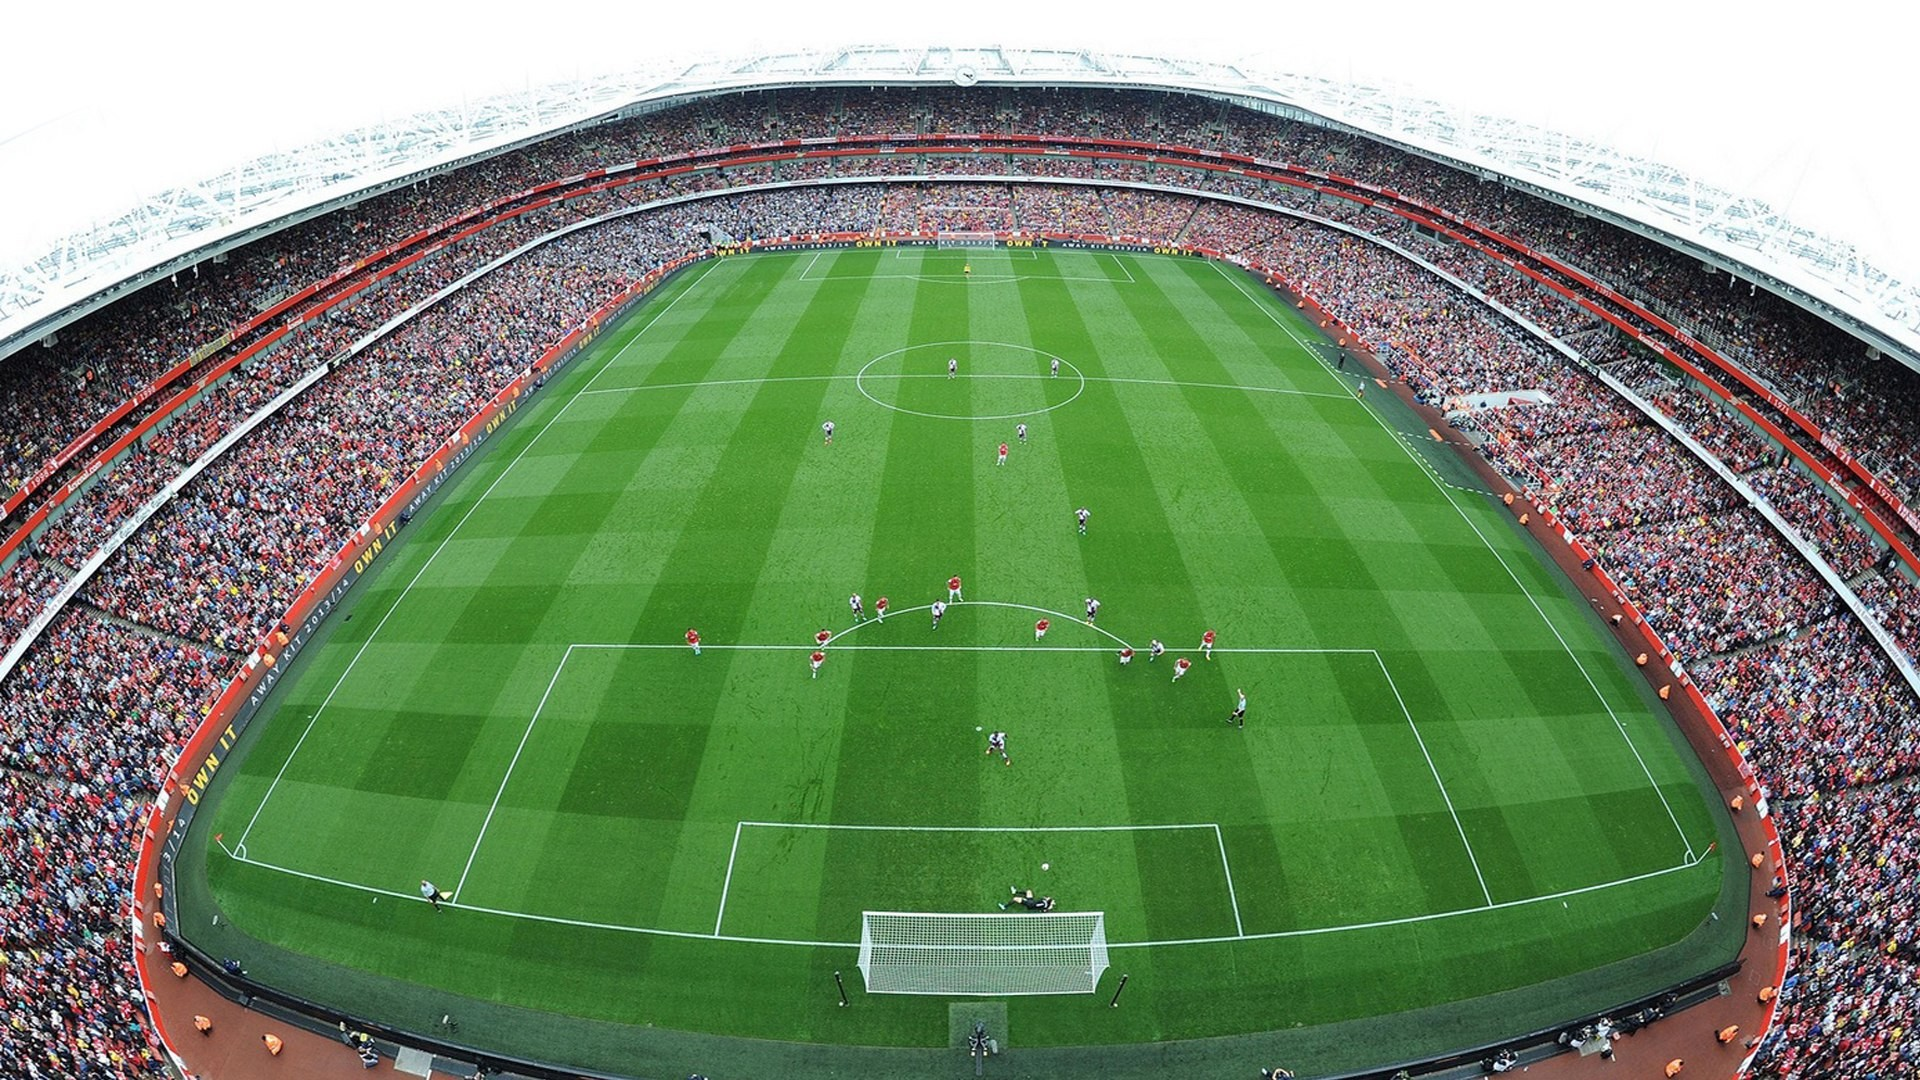 Emirates Stadium – Arsenal FC wallpapers and images – wallpapers .